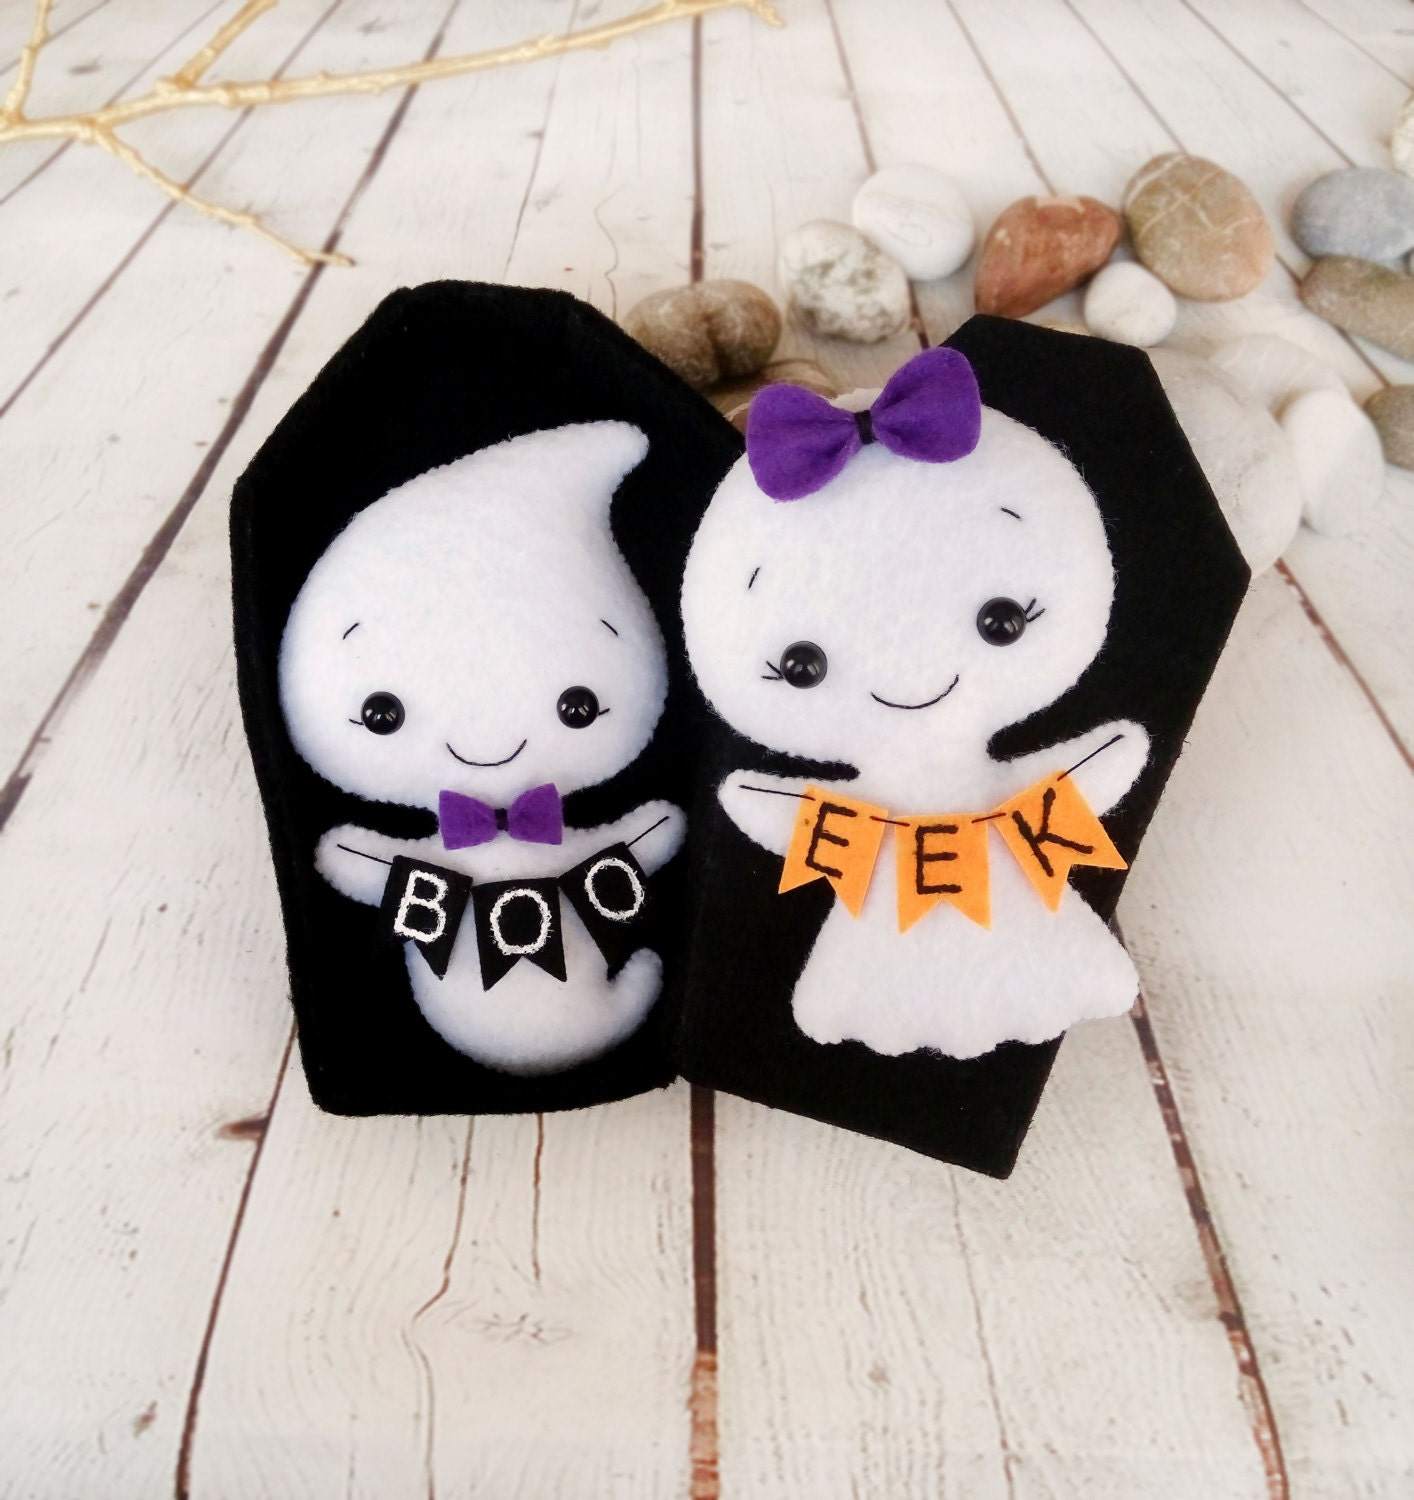 Baby Gifts For Halloween : Halloween decor ghost felt toy gift baby shower